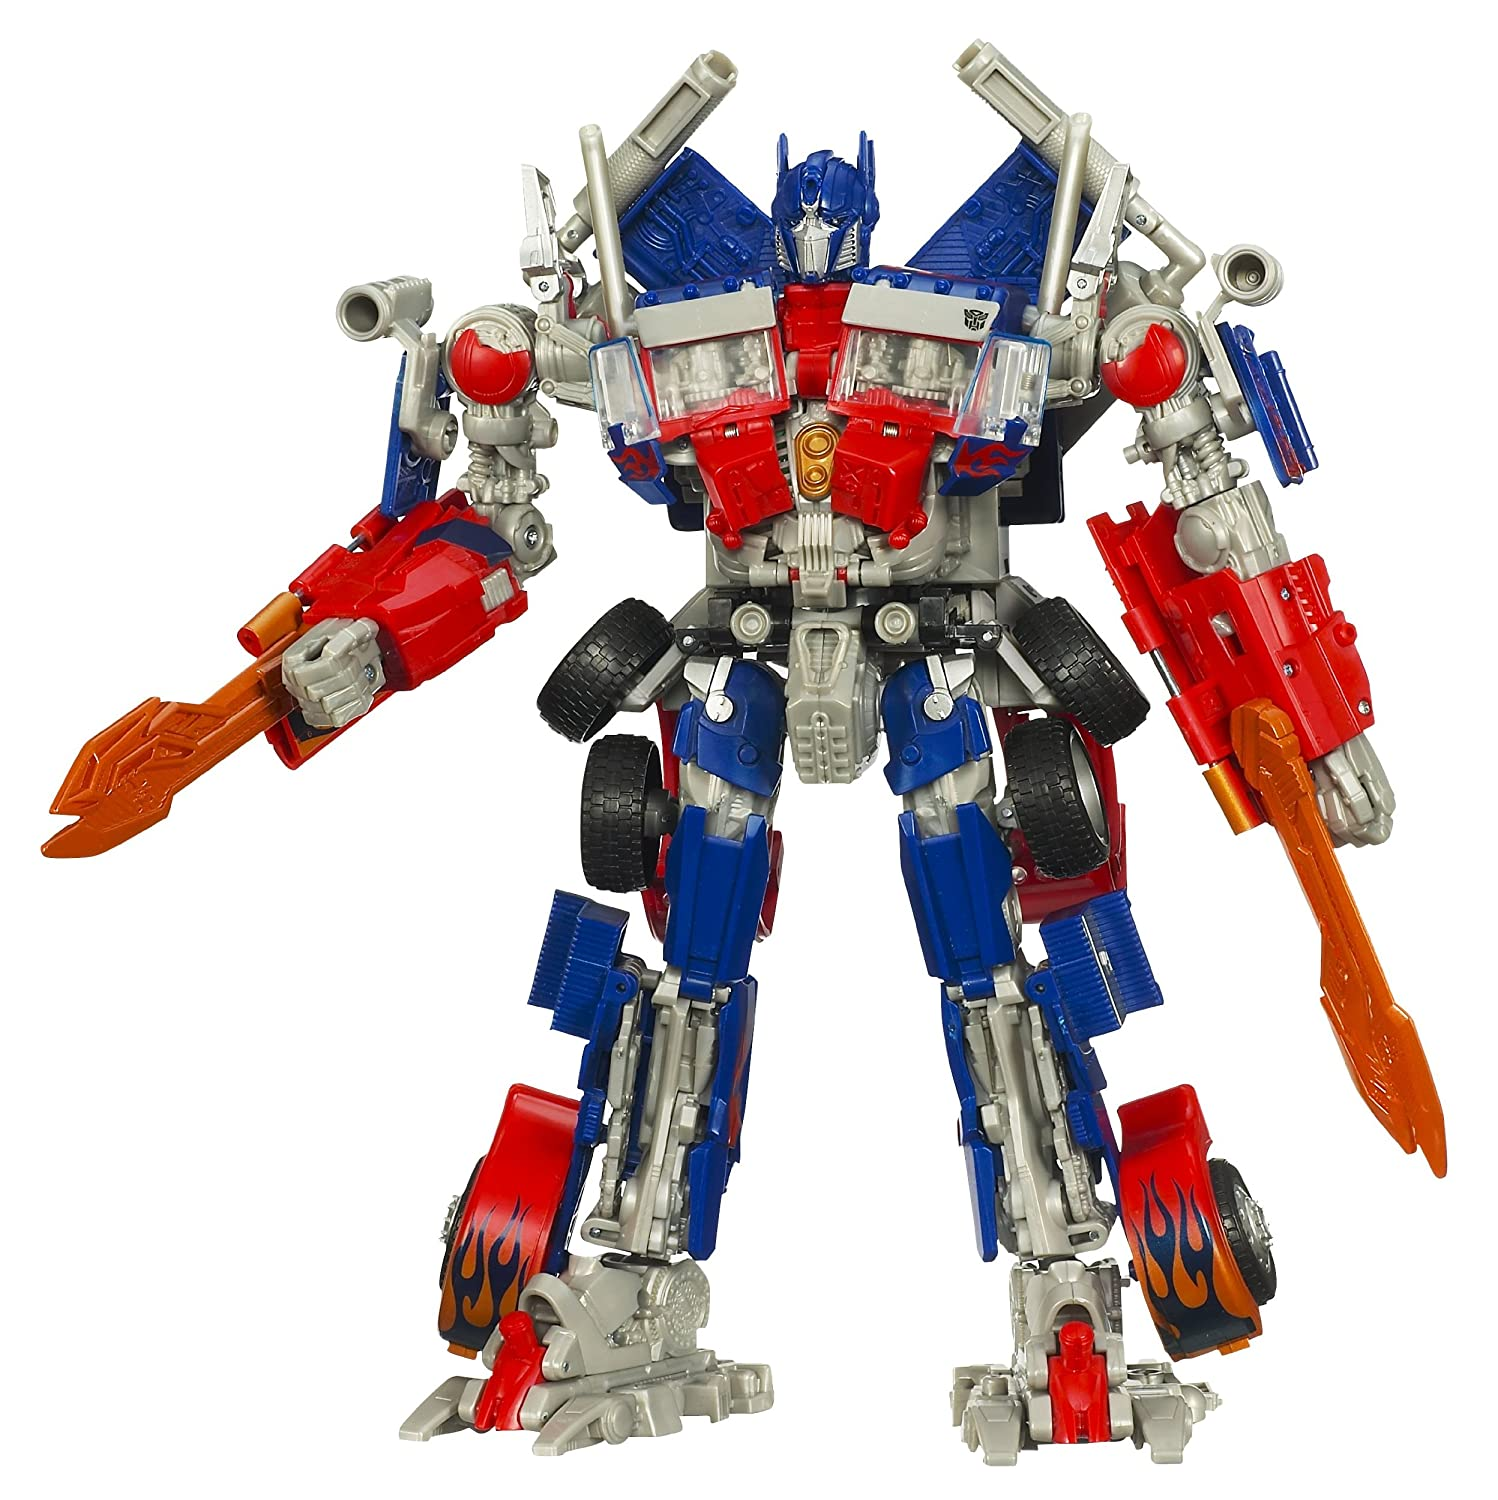 transformers 2007 movie optimus prime transforming action figurine jouet ebay. Black Bedroom Furniture Sets. Home Design Ideas